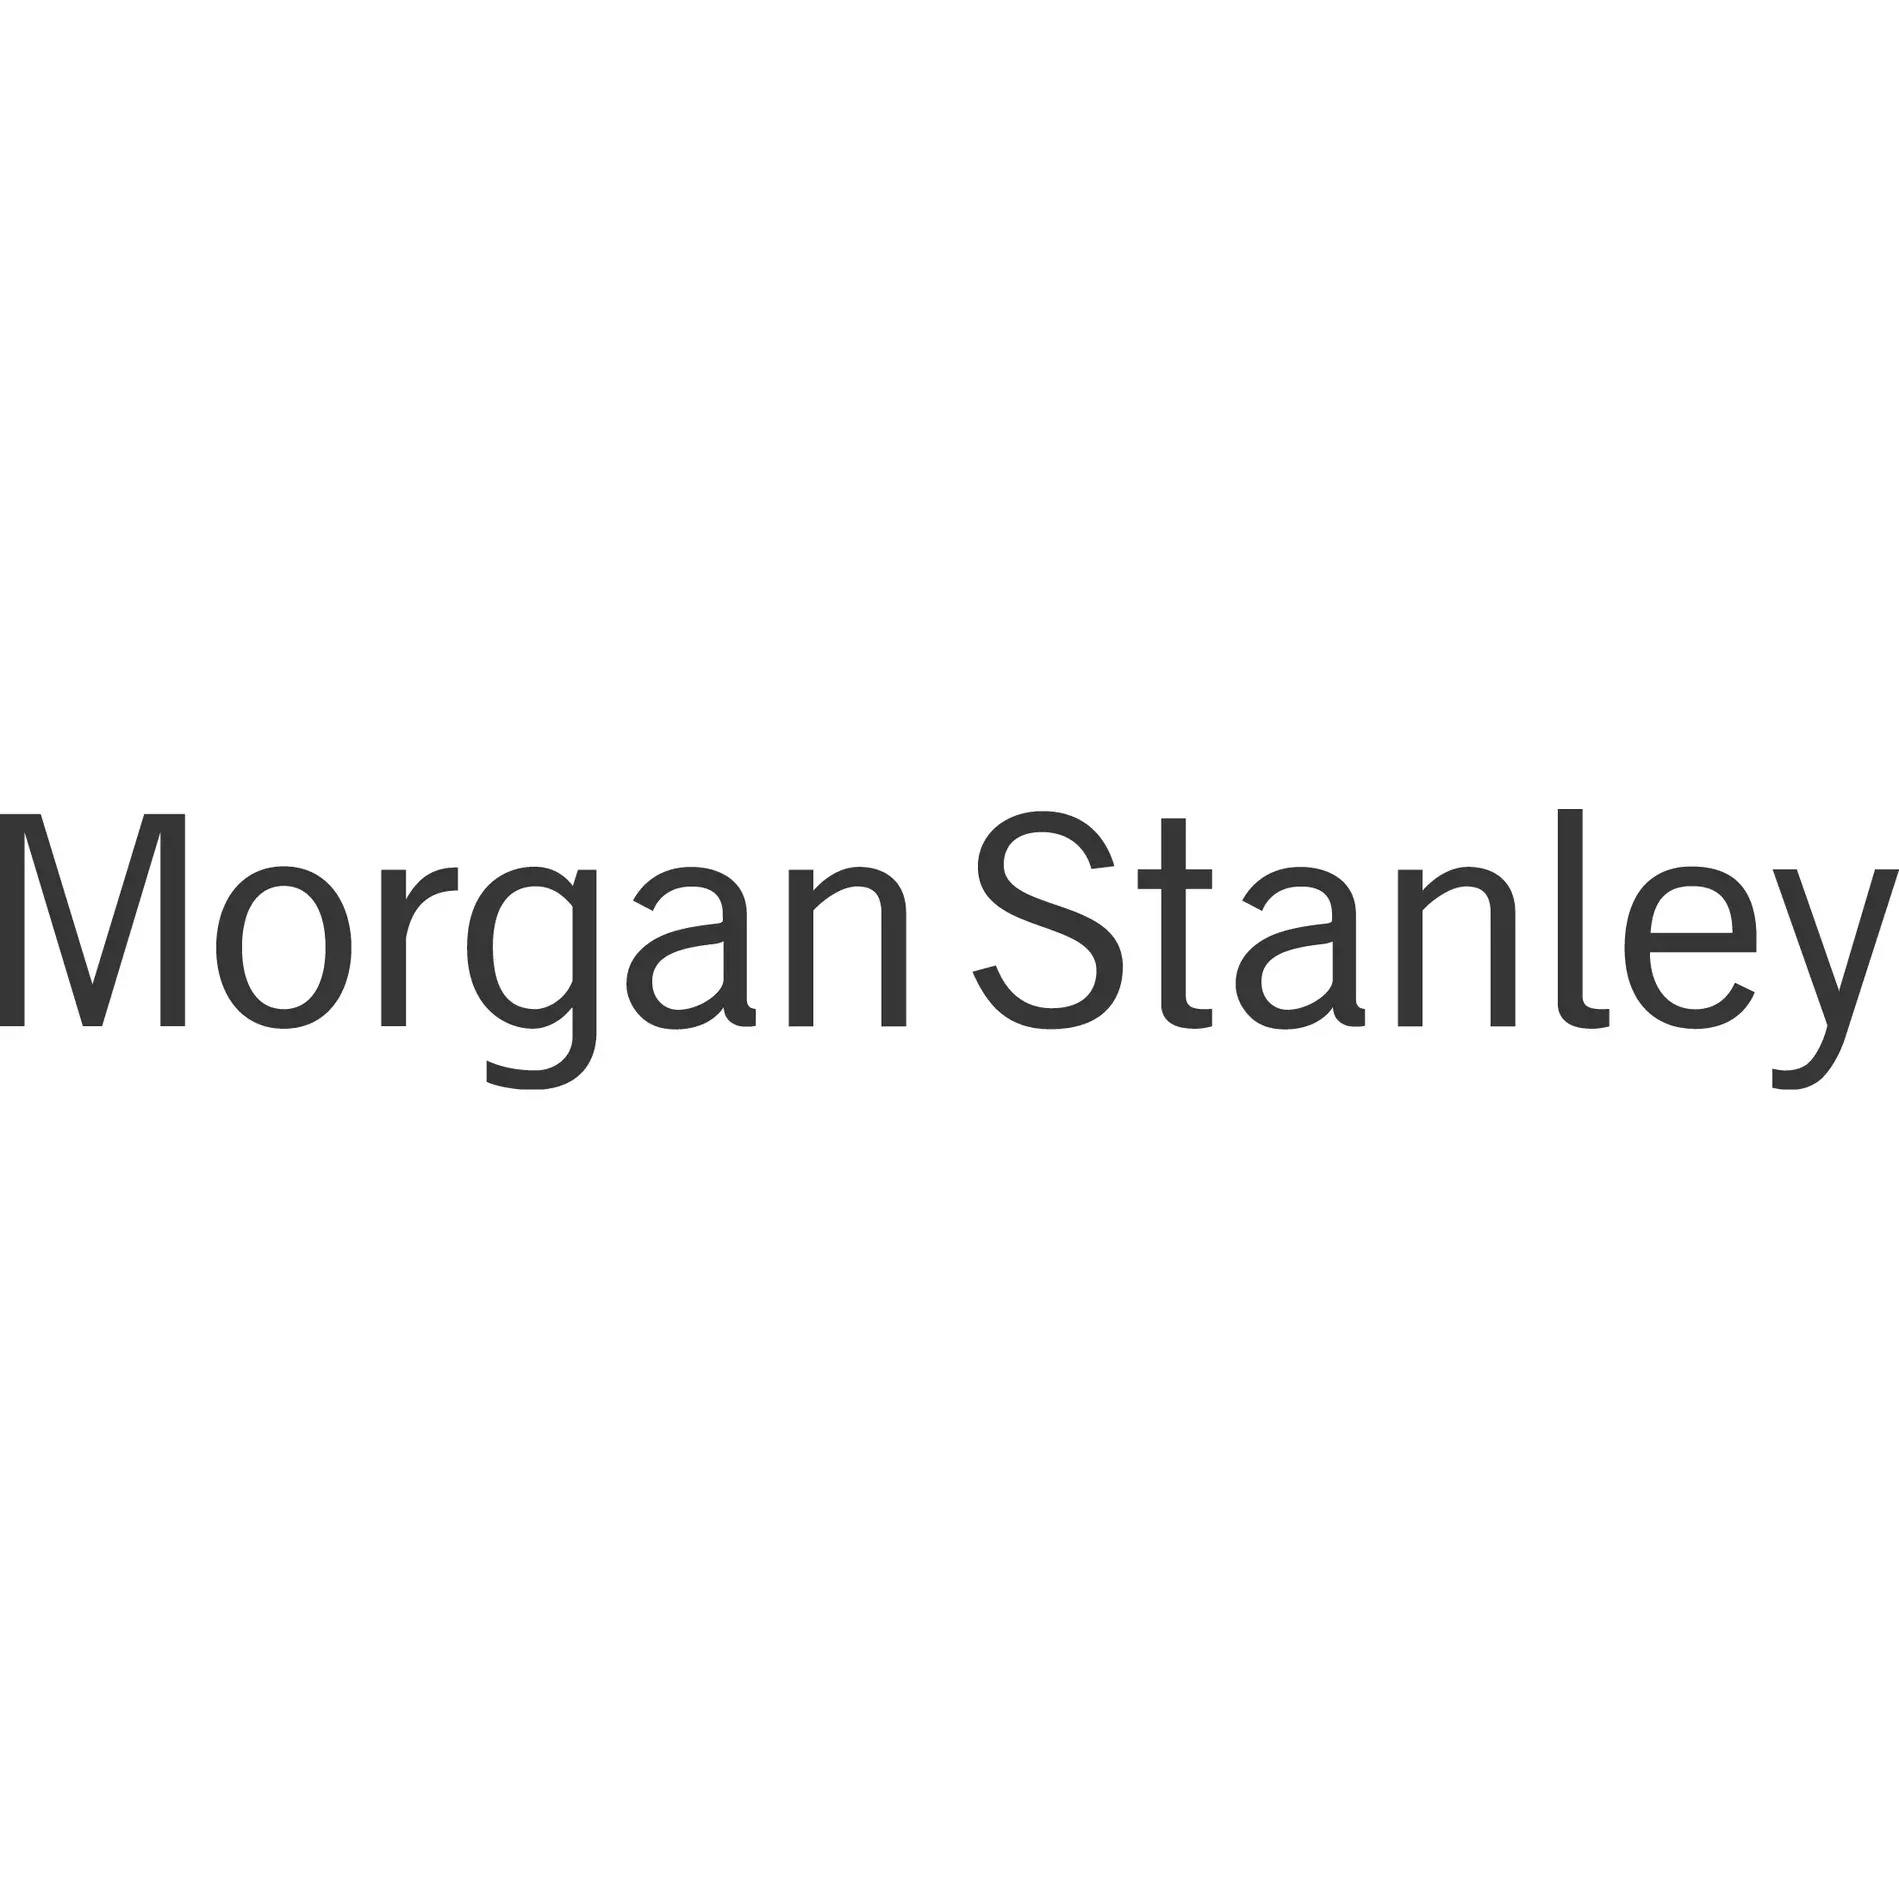 Brotherton Brown Group - Morgan Stanley